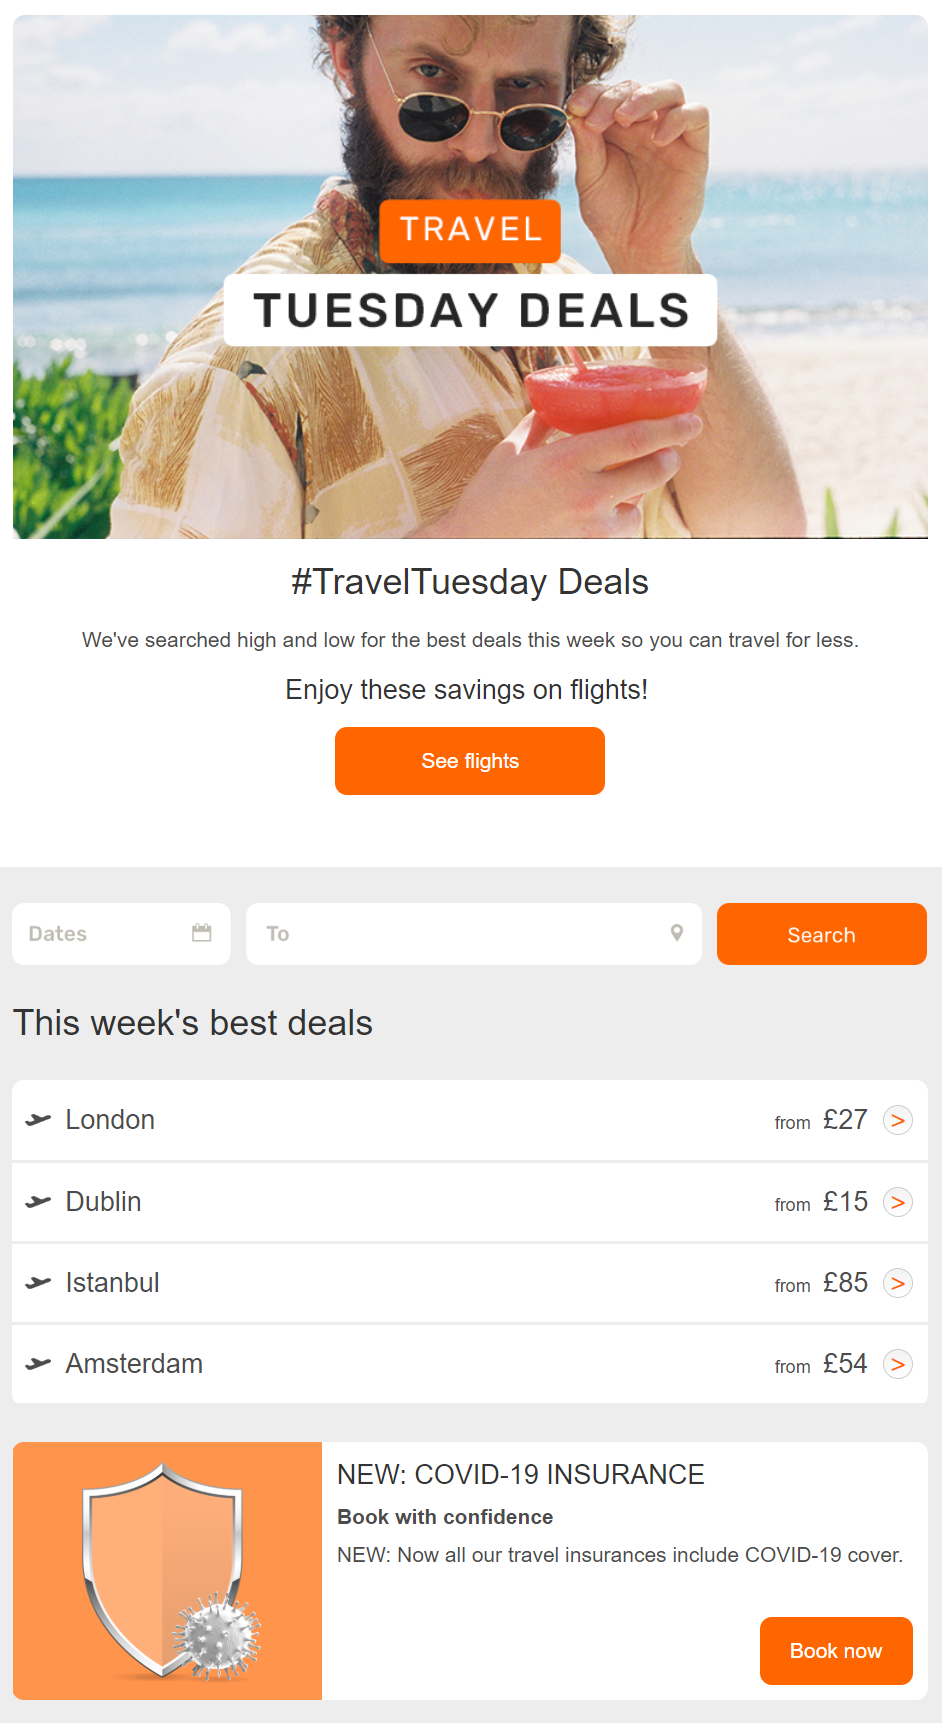 opodo-2-traveltuesday-deals-save-big-on-this-weeks-special-destinations